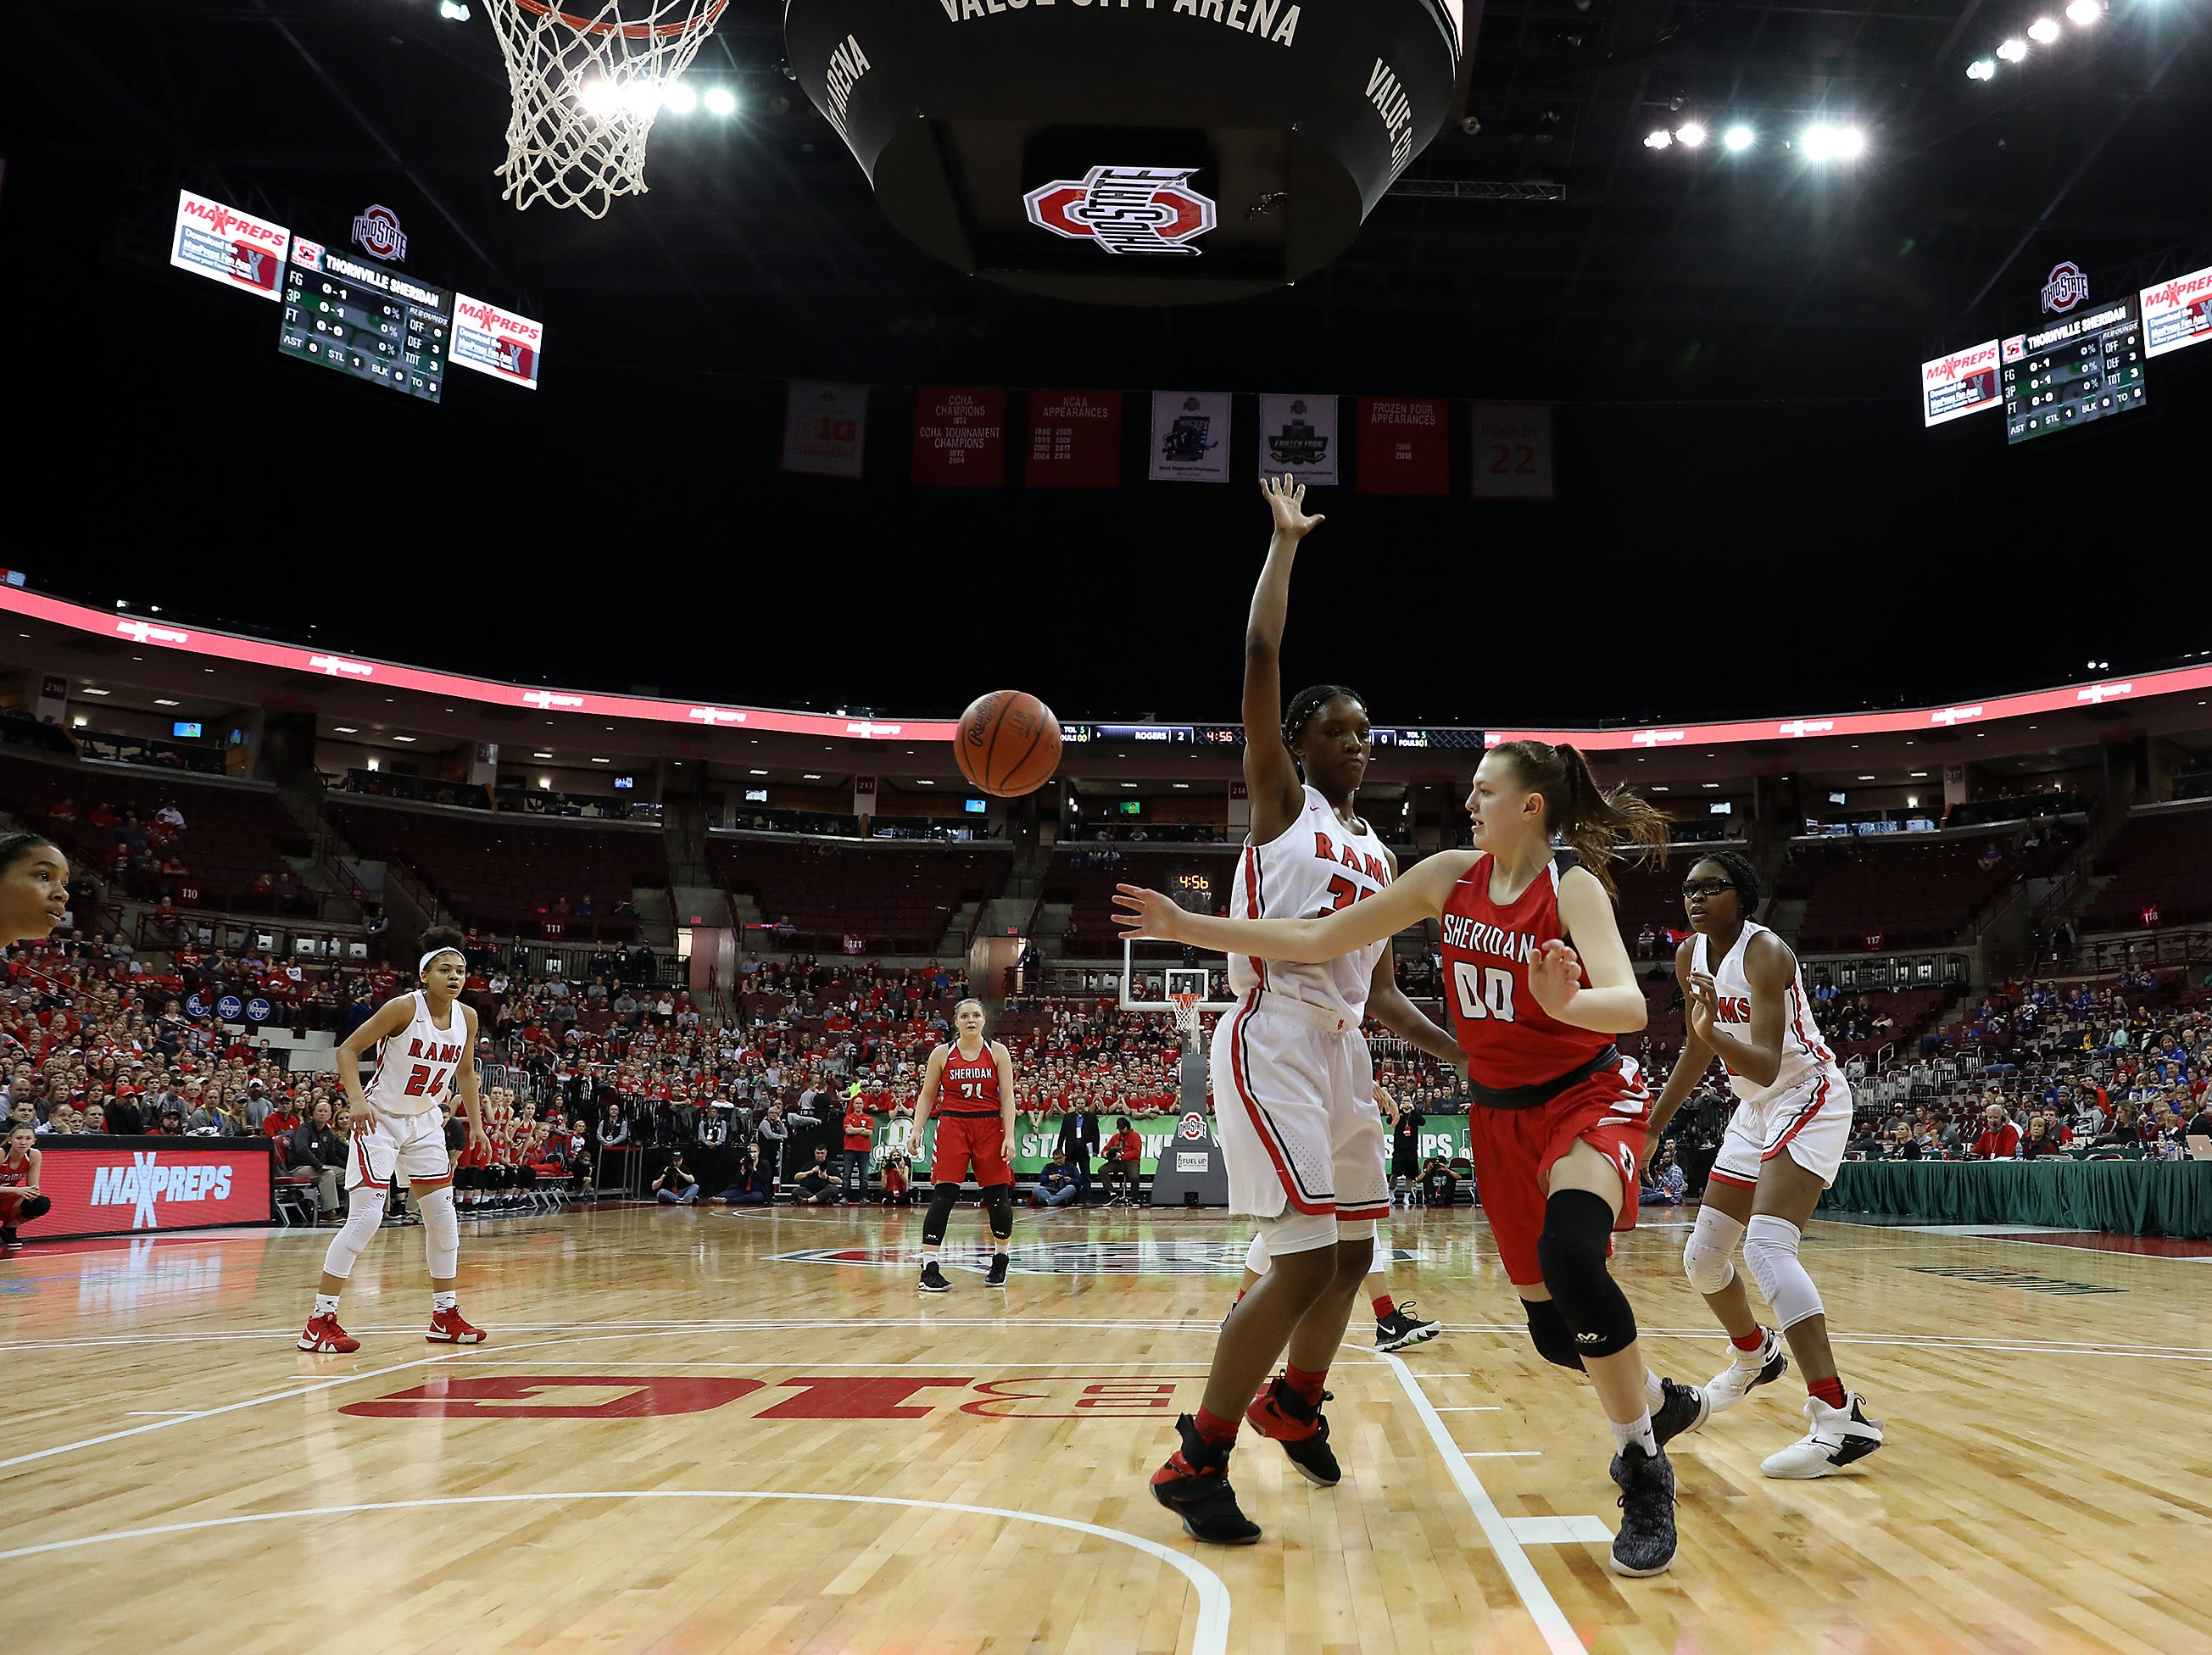 Sheridan's Faith Stinson passes the ball against Toledo Rogers during the DII state semis in Columbus on Thursday.